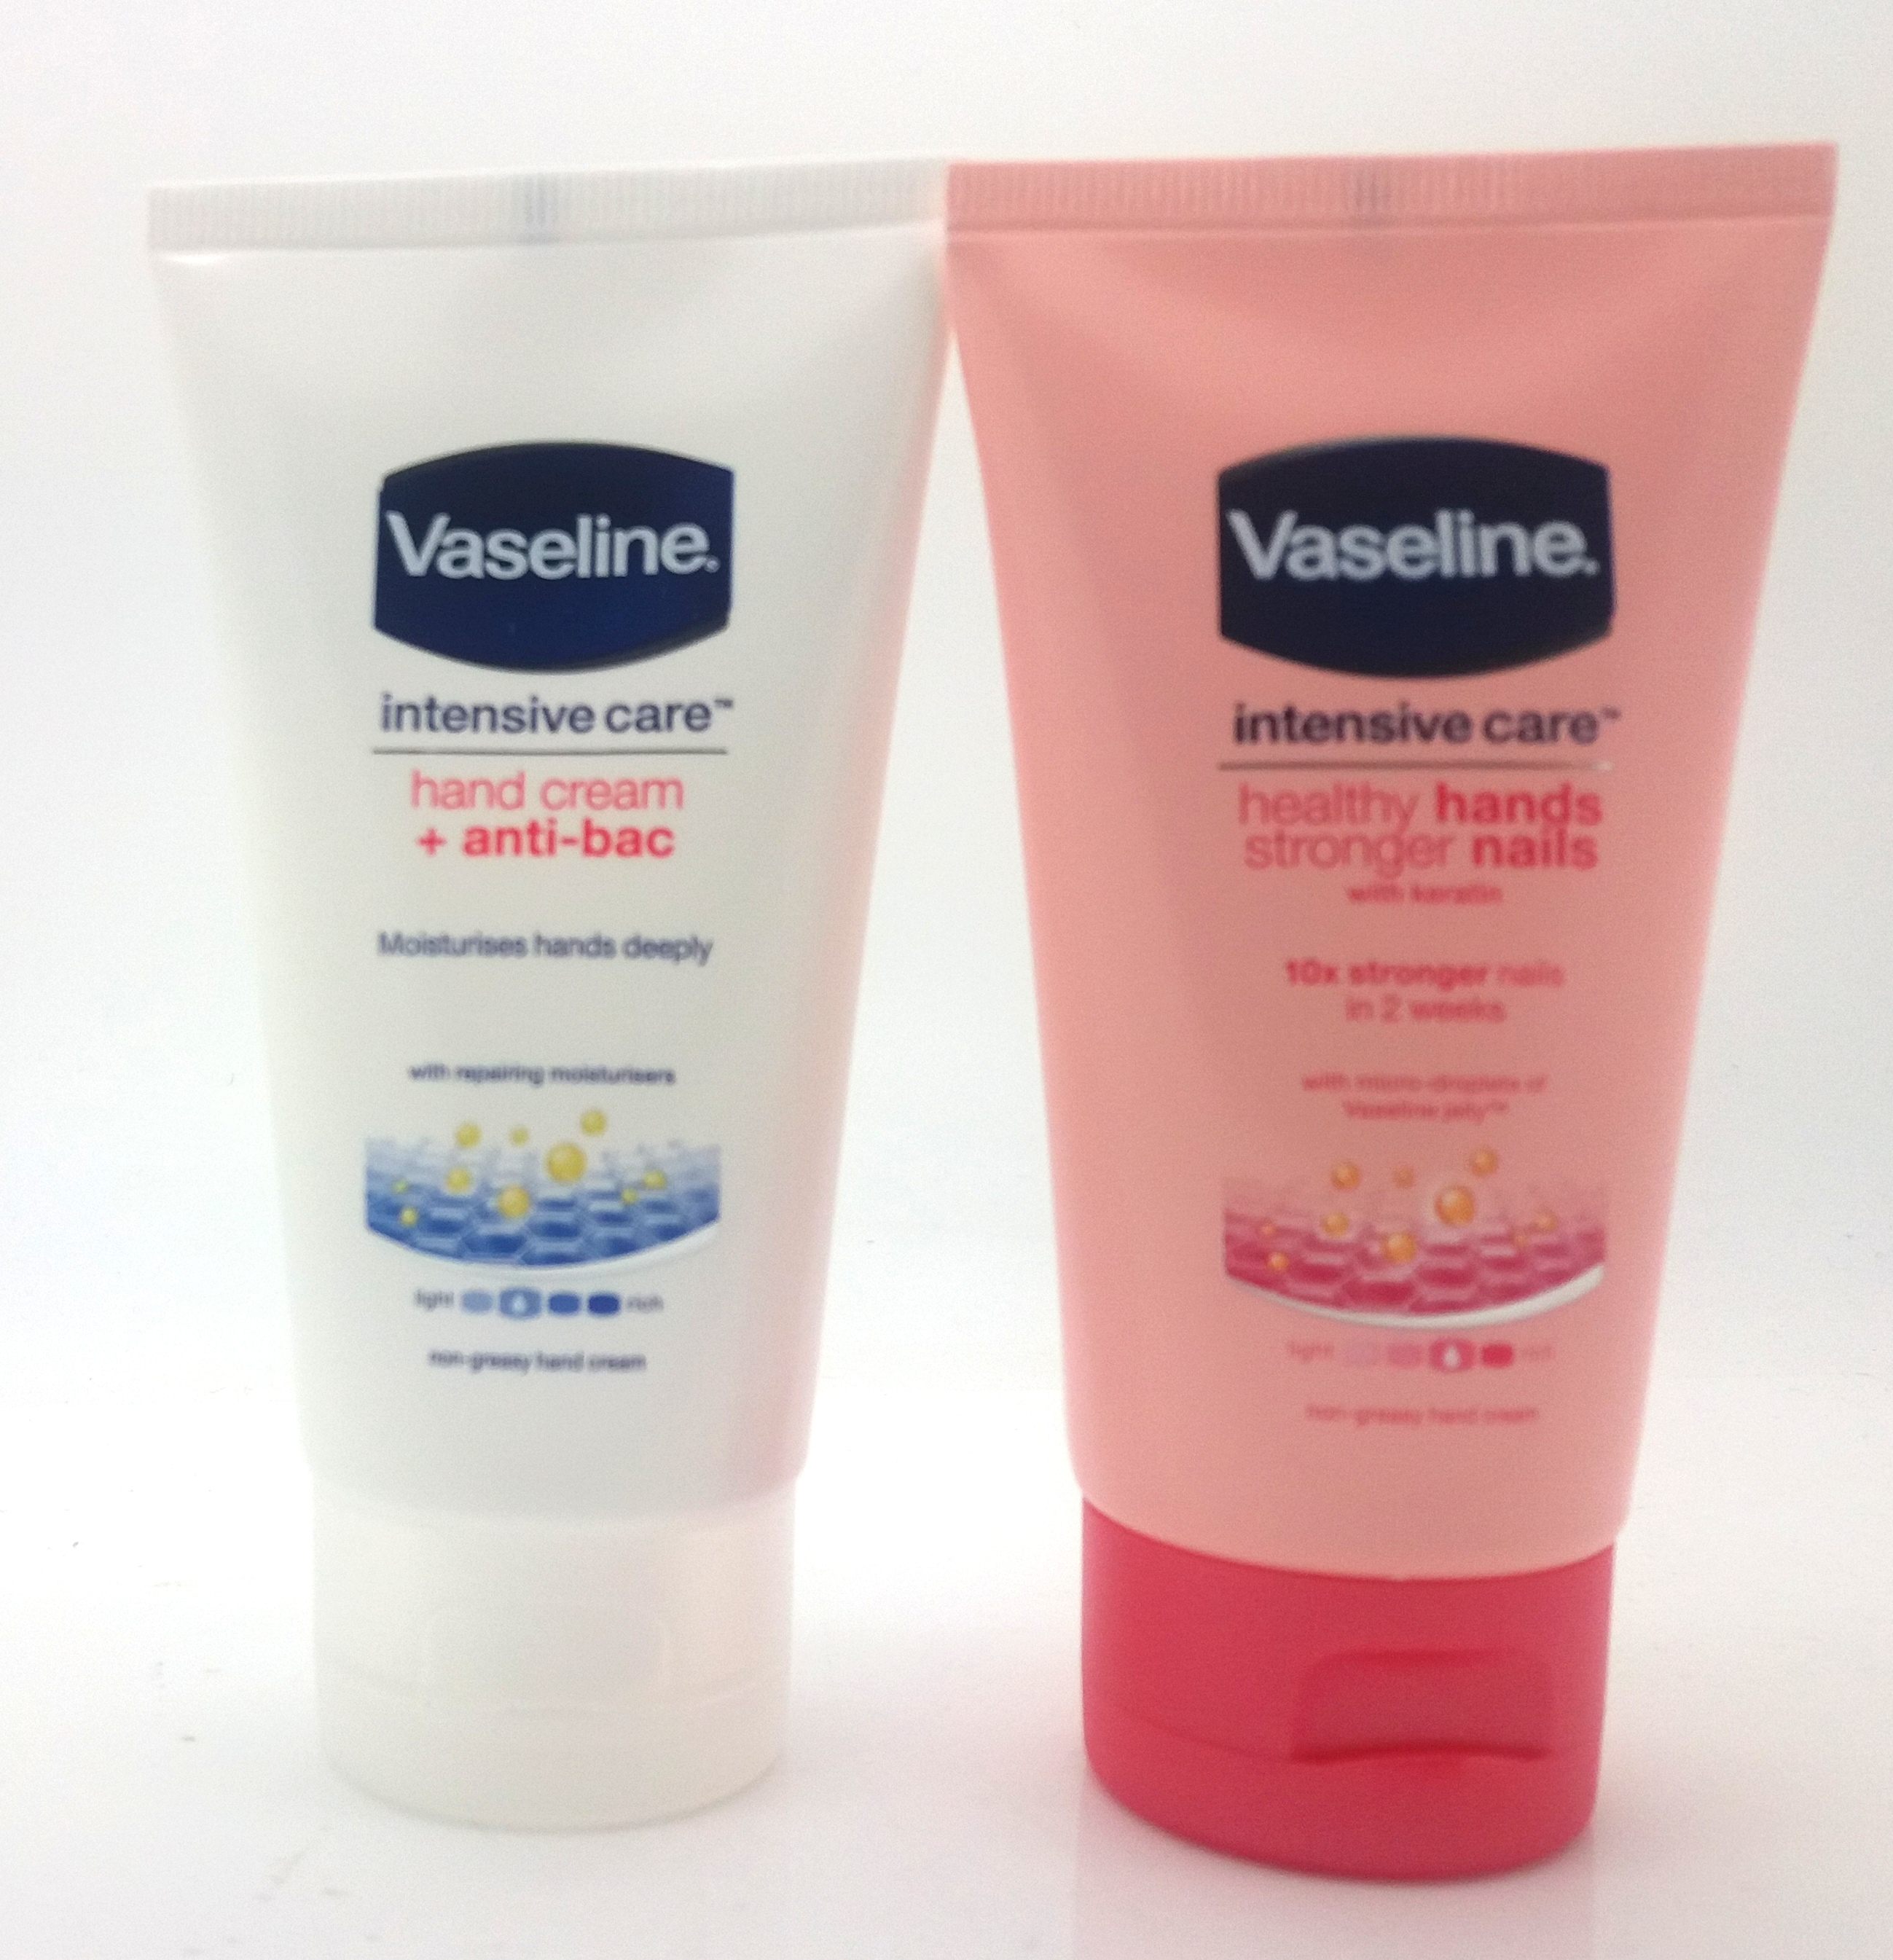 vaseline intensive care vaseline and nail nail ftempo 30757